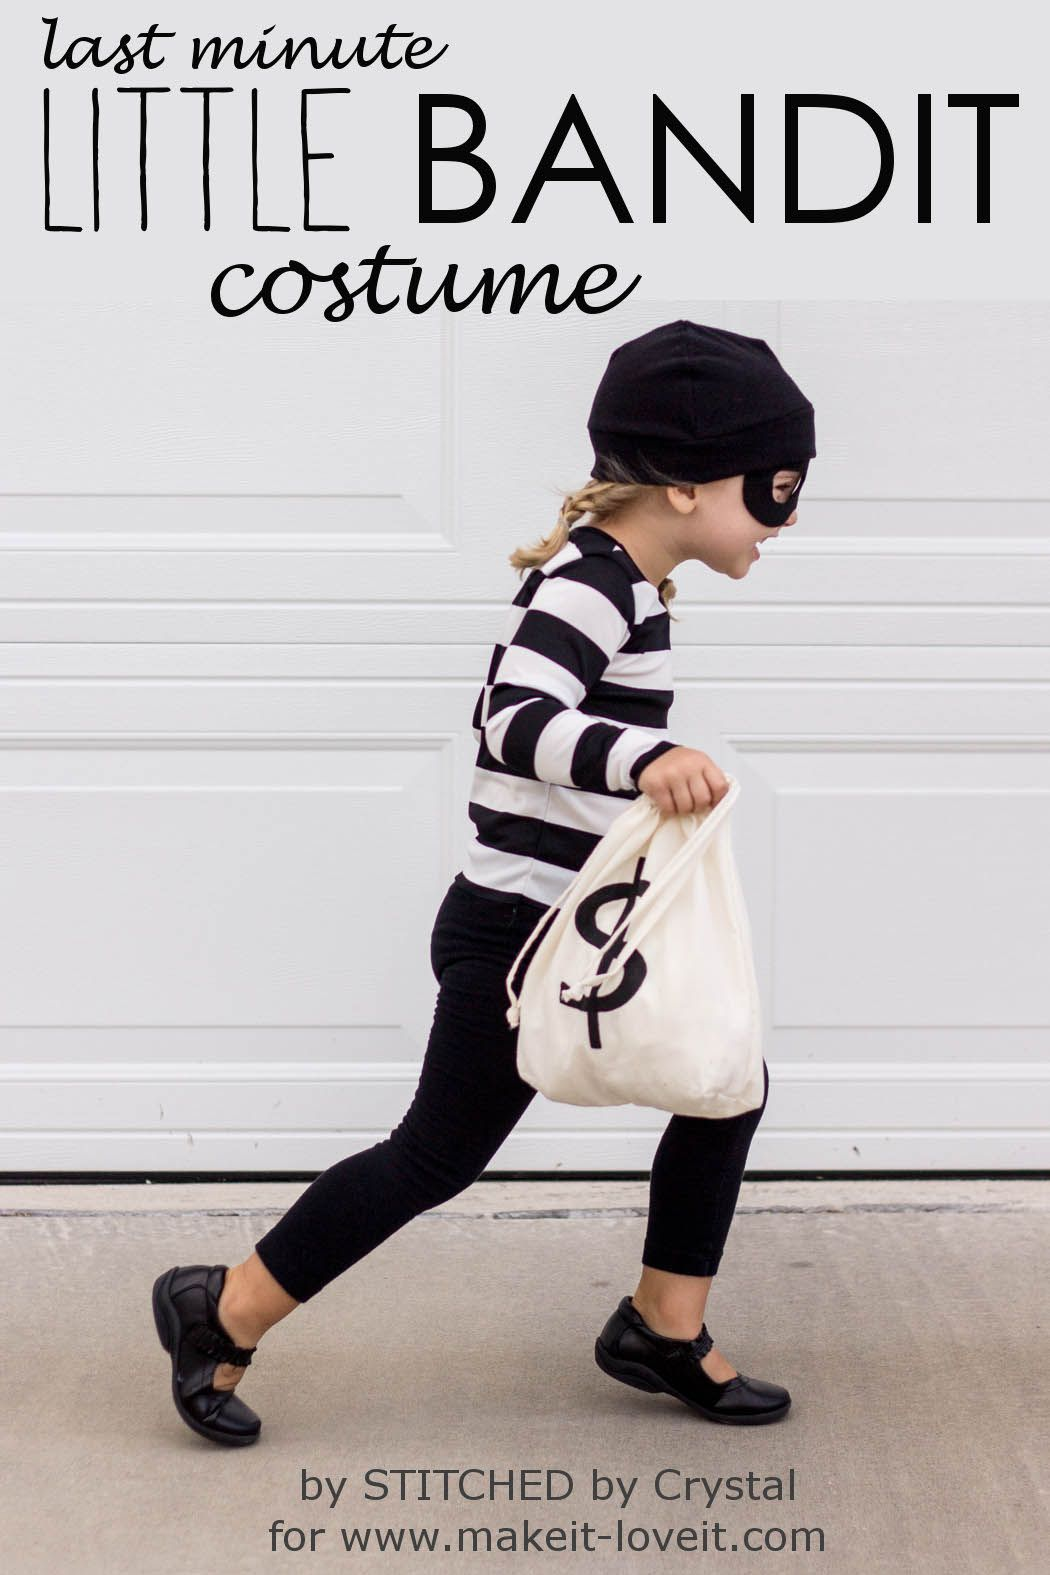 make a last minute little bandit costume for boys and girls of any